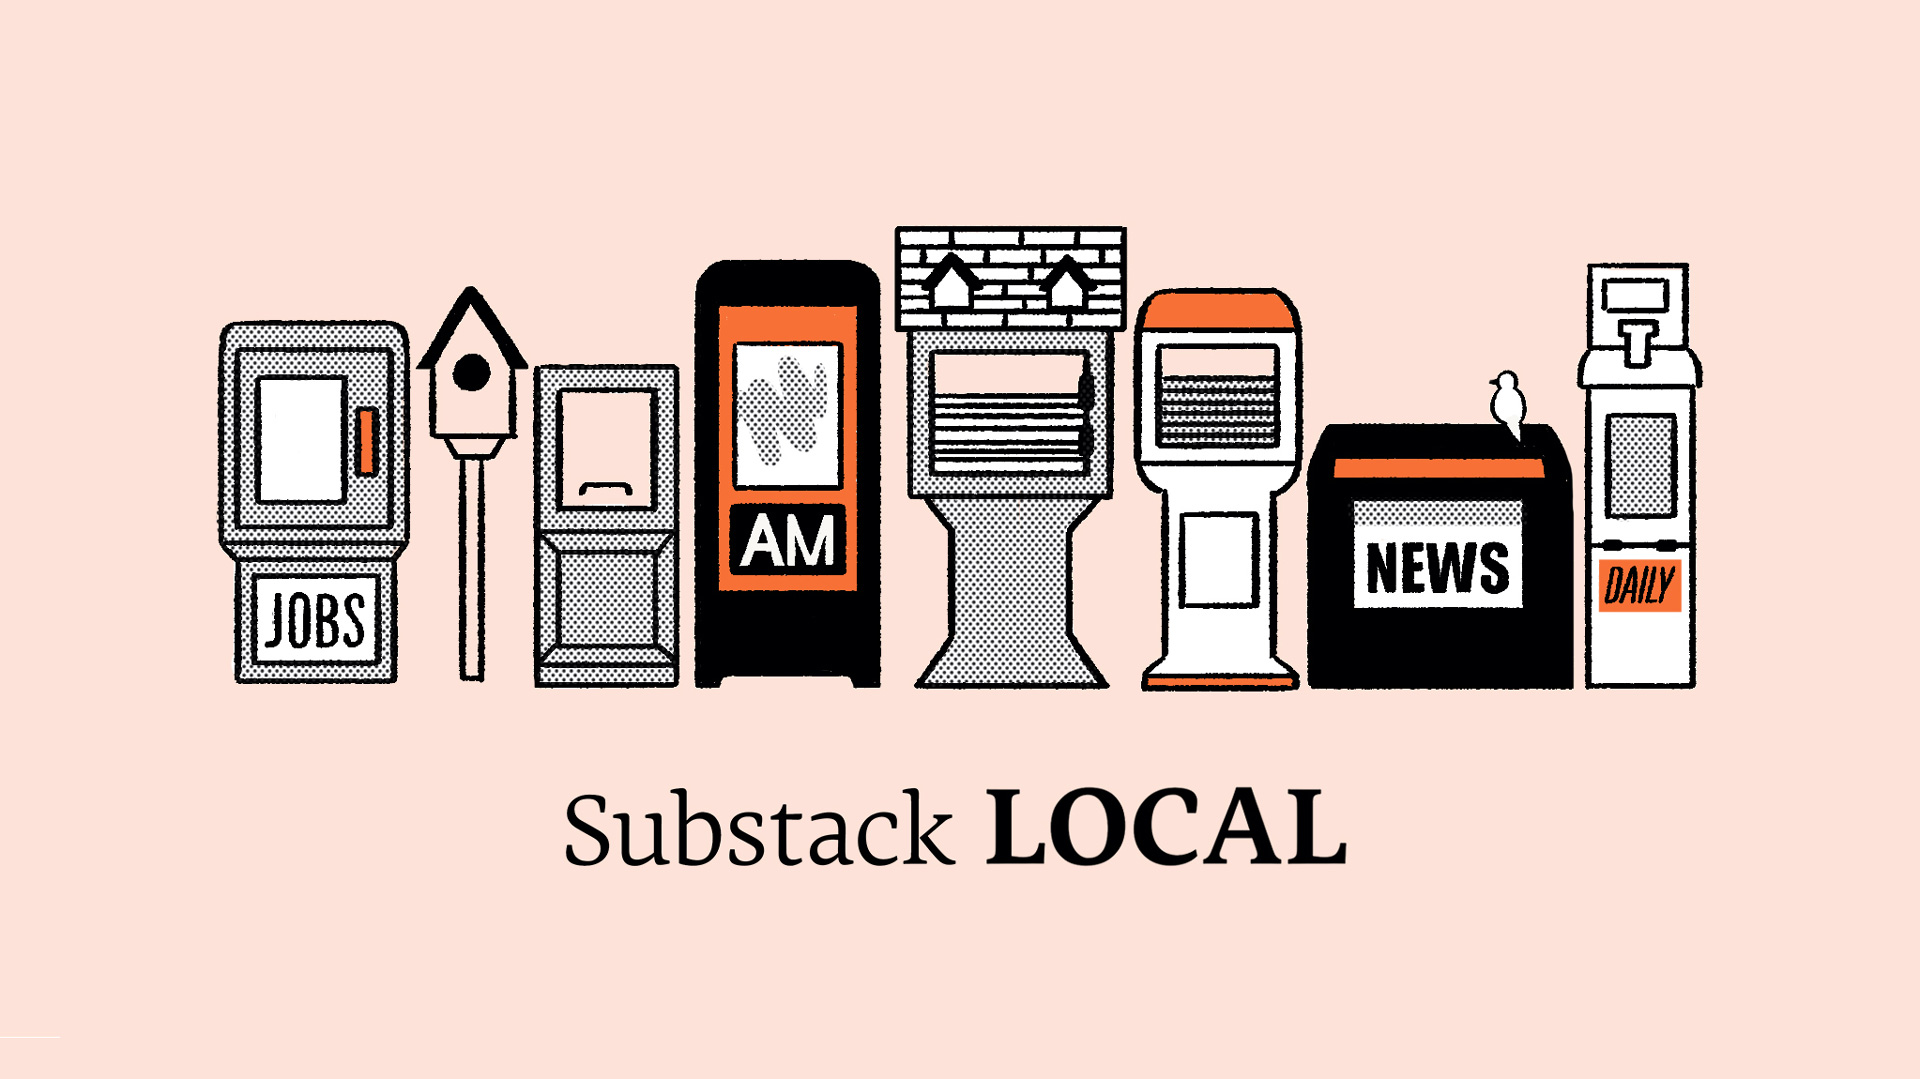 Substack Local